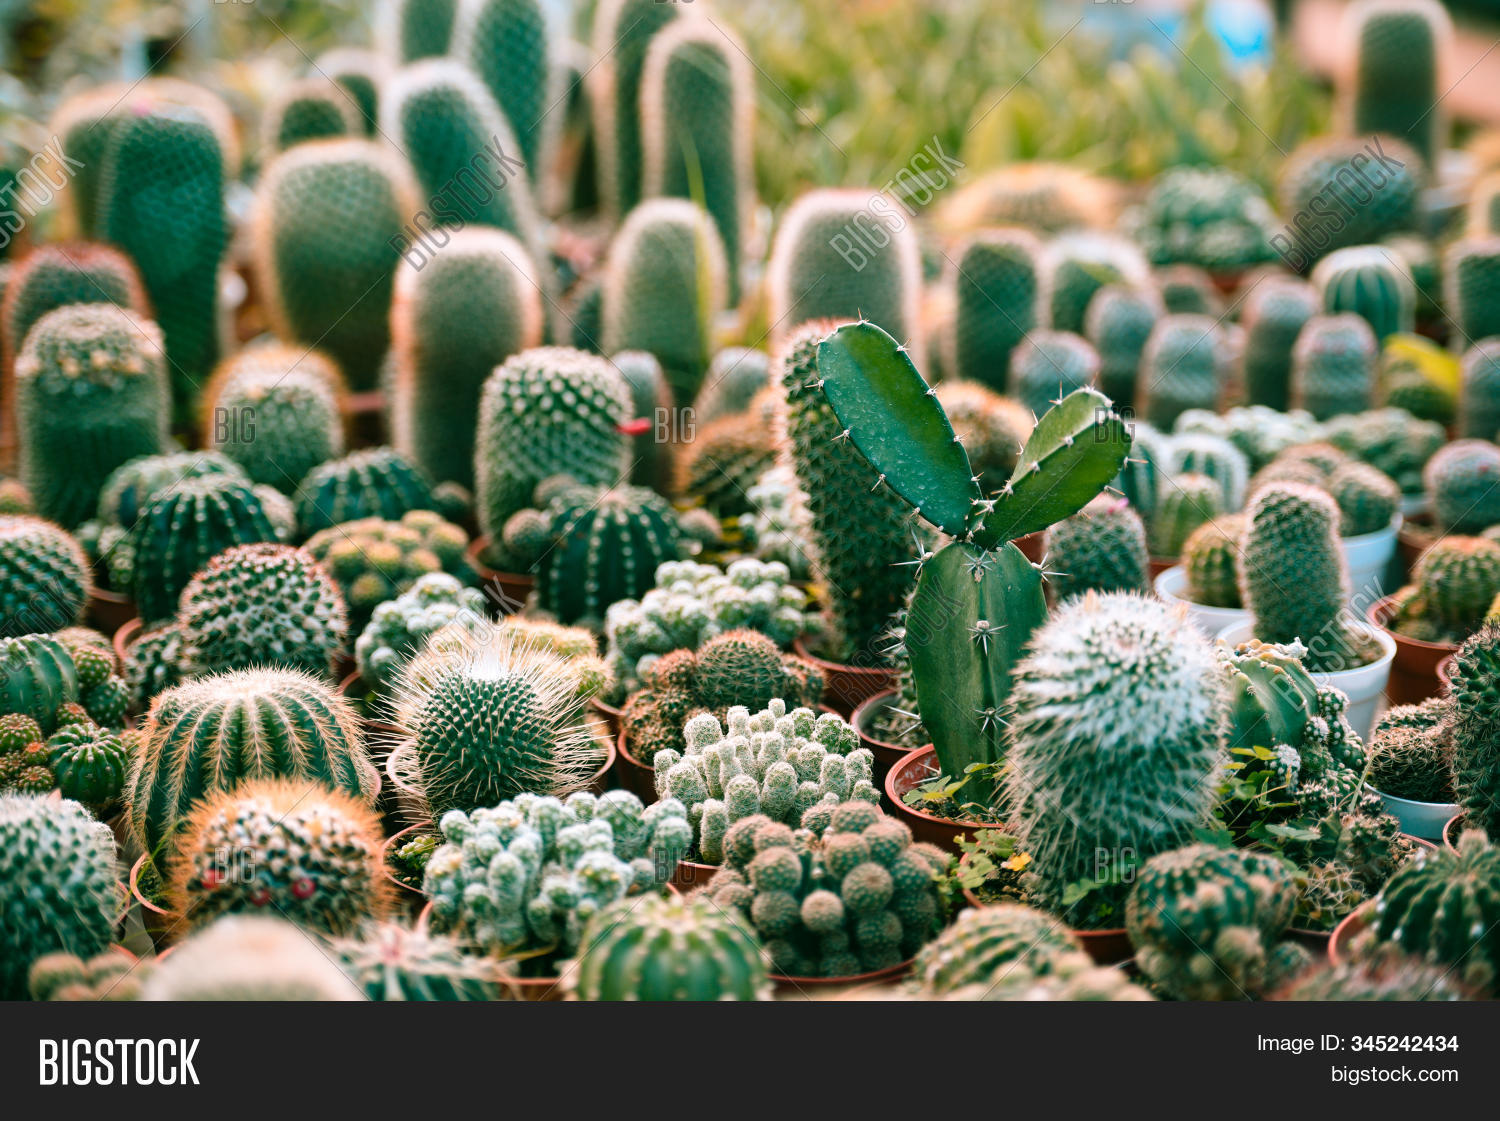 Miniature Cactus Pot Image Photo